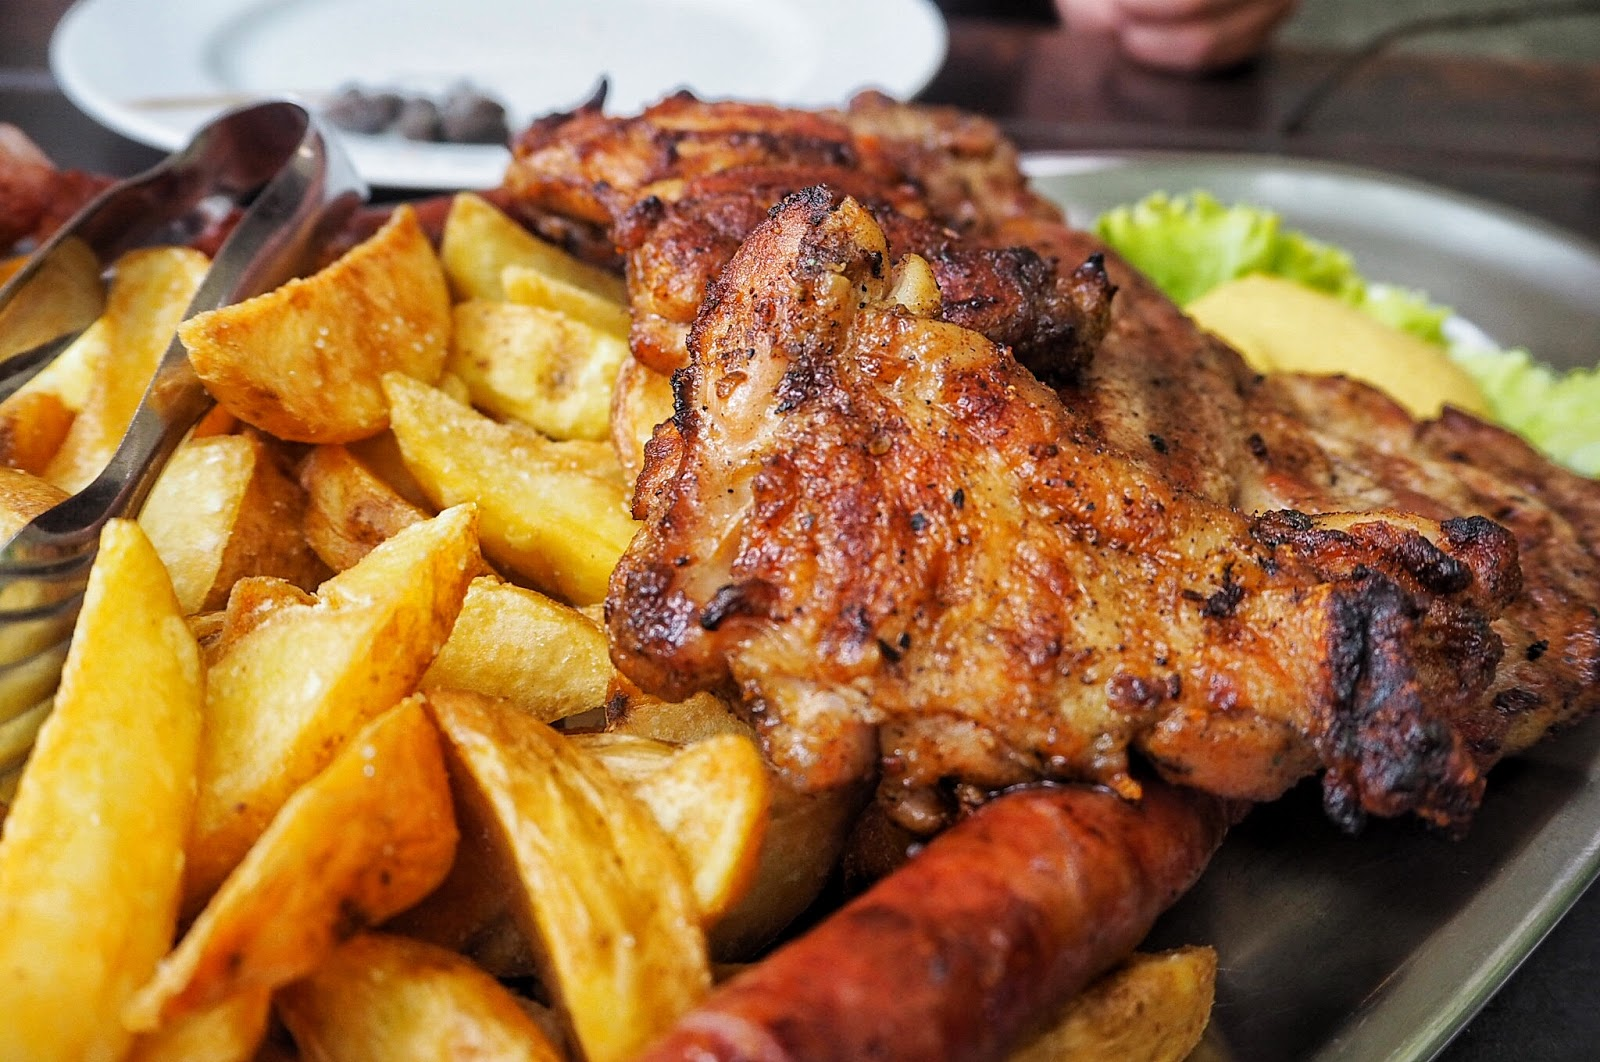 Food, dining, Dubrovnik, Croatia, Food blog, Restaurant, Lady PiPi, Mixed Grill, Meat Platter